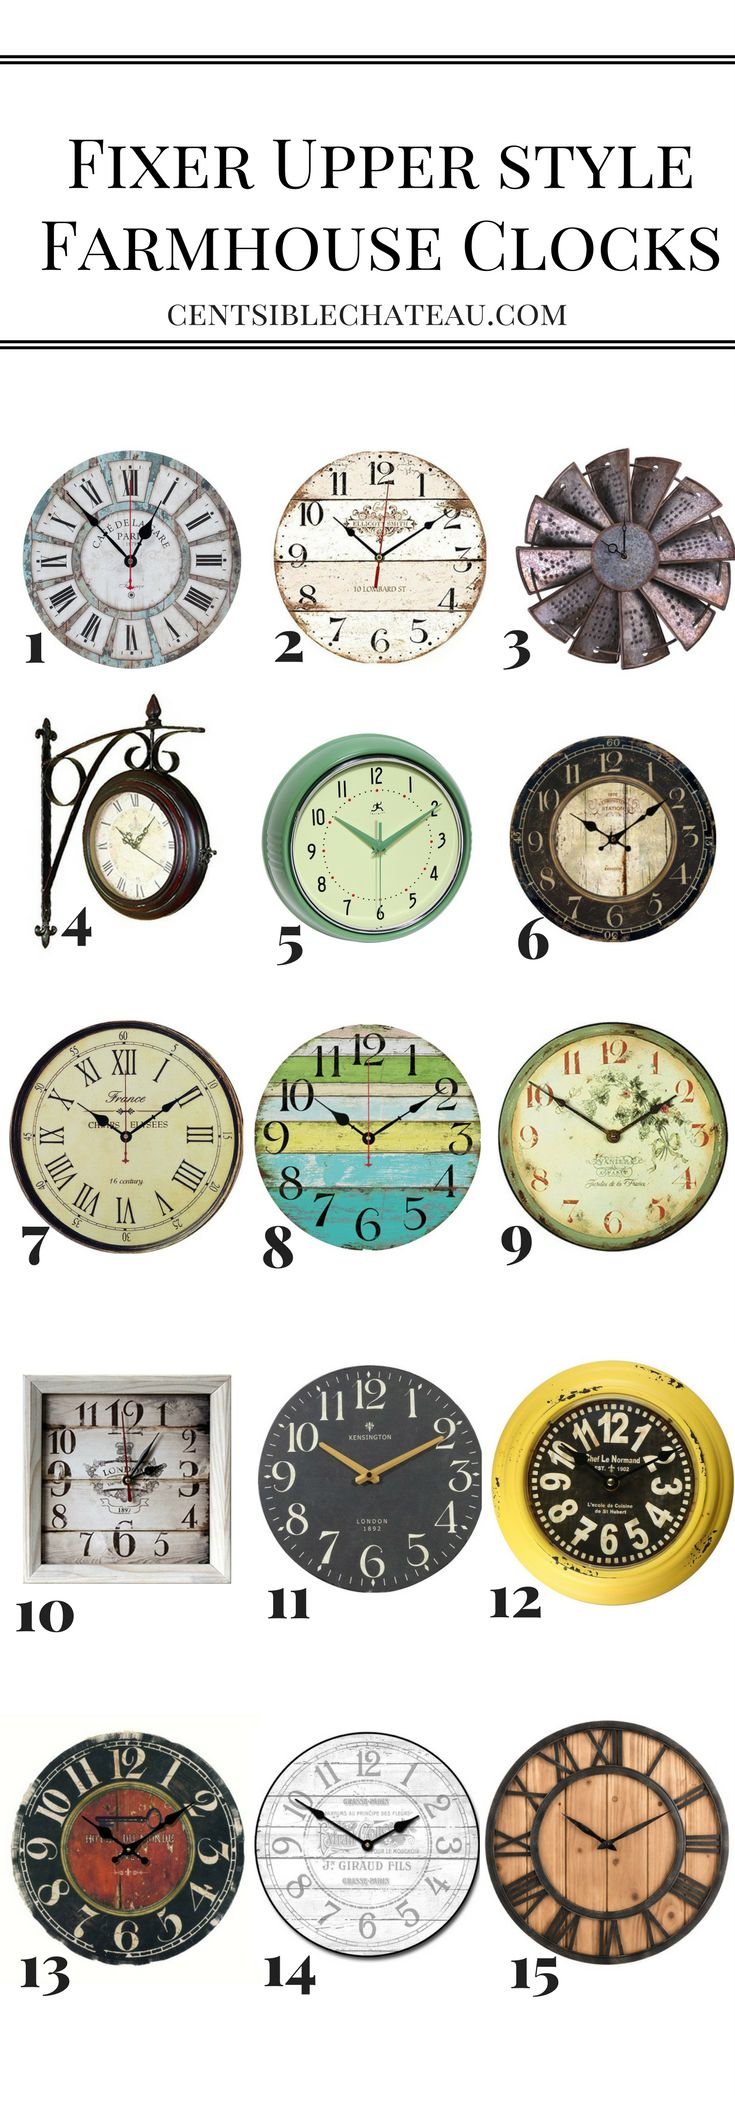 Fixer Upper Style Farmhouse Clocks - Centsible Chateau